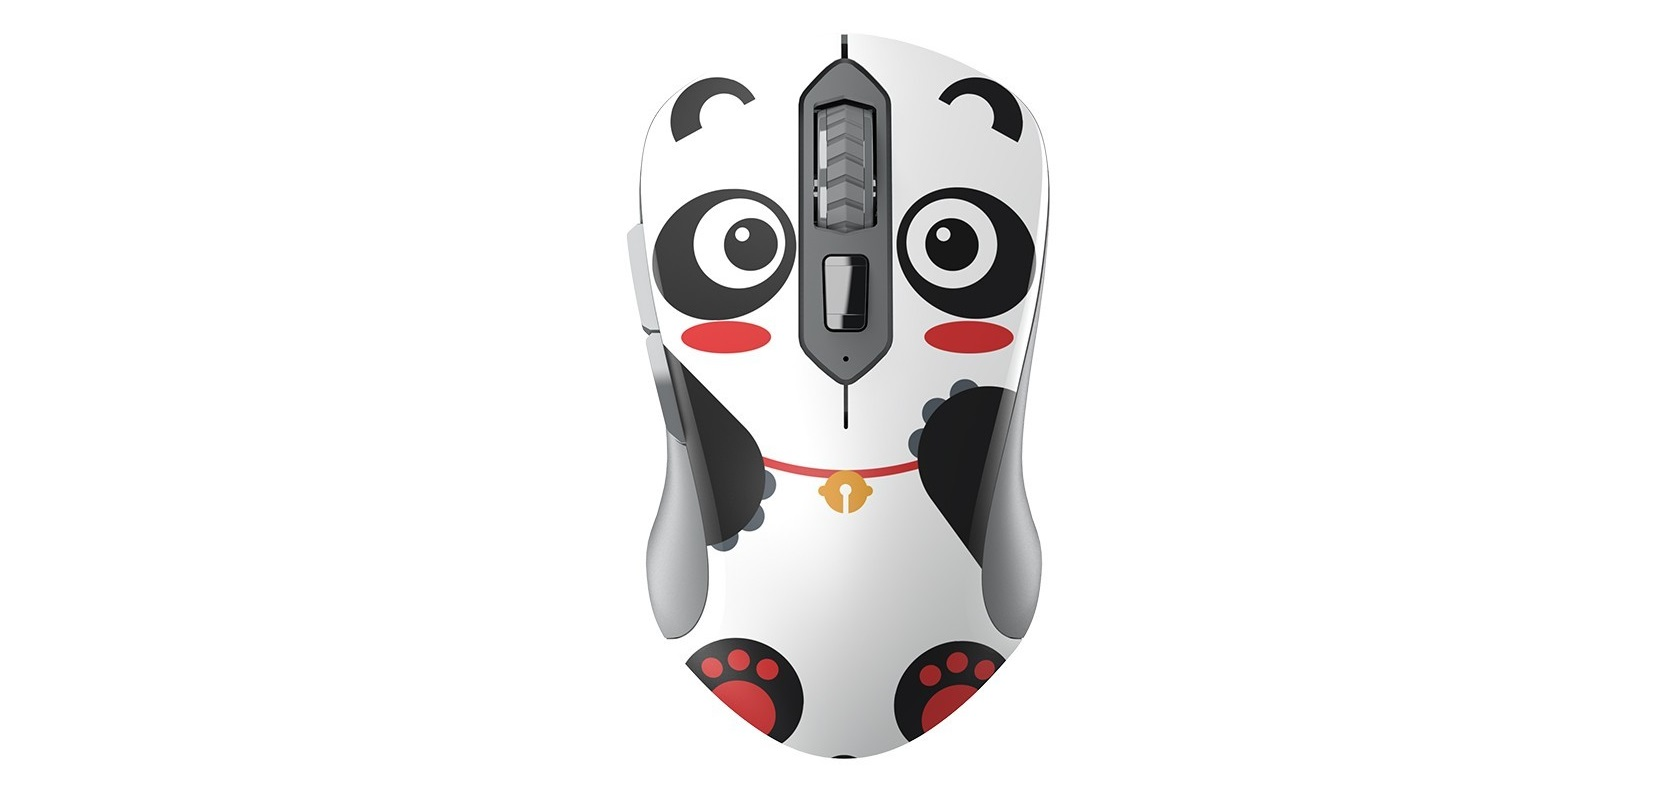 Thiết kế của Mouse Dareu LM115G Multi Color Wireless Black Panda